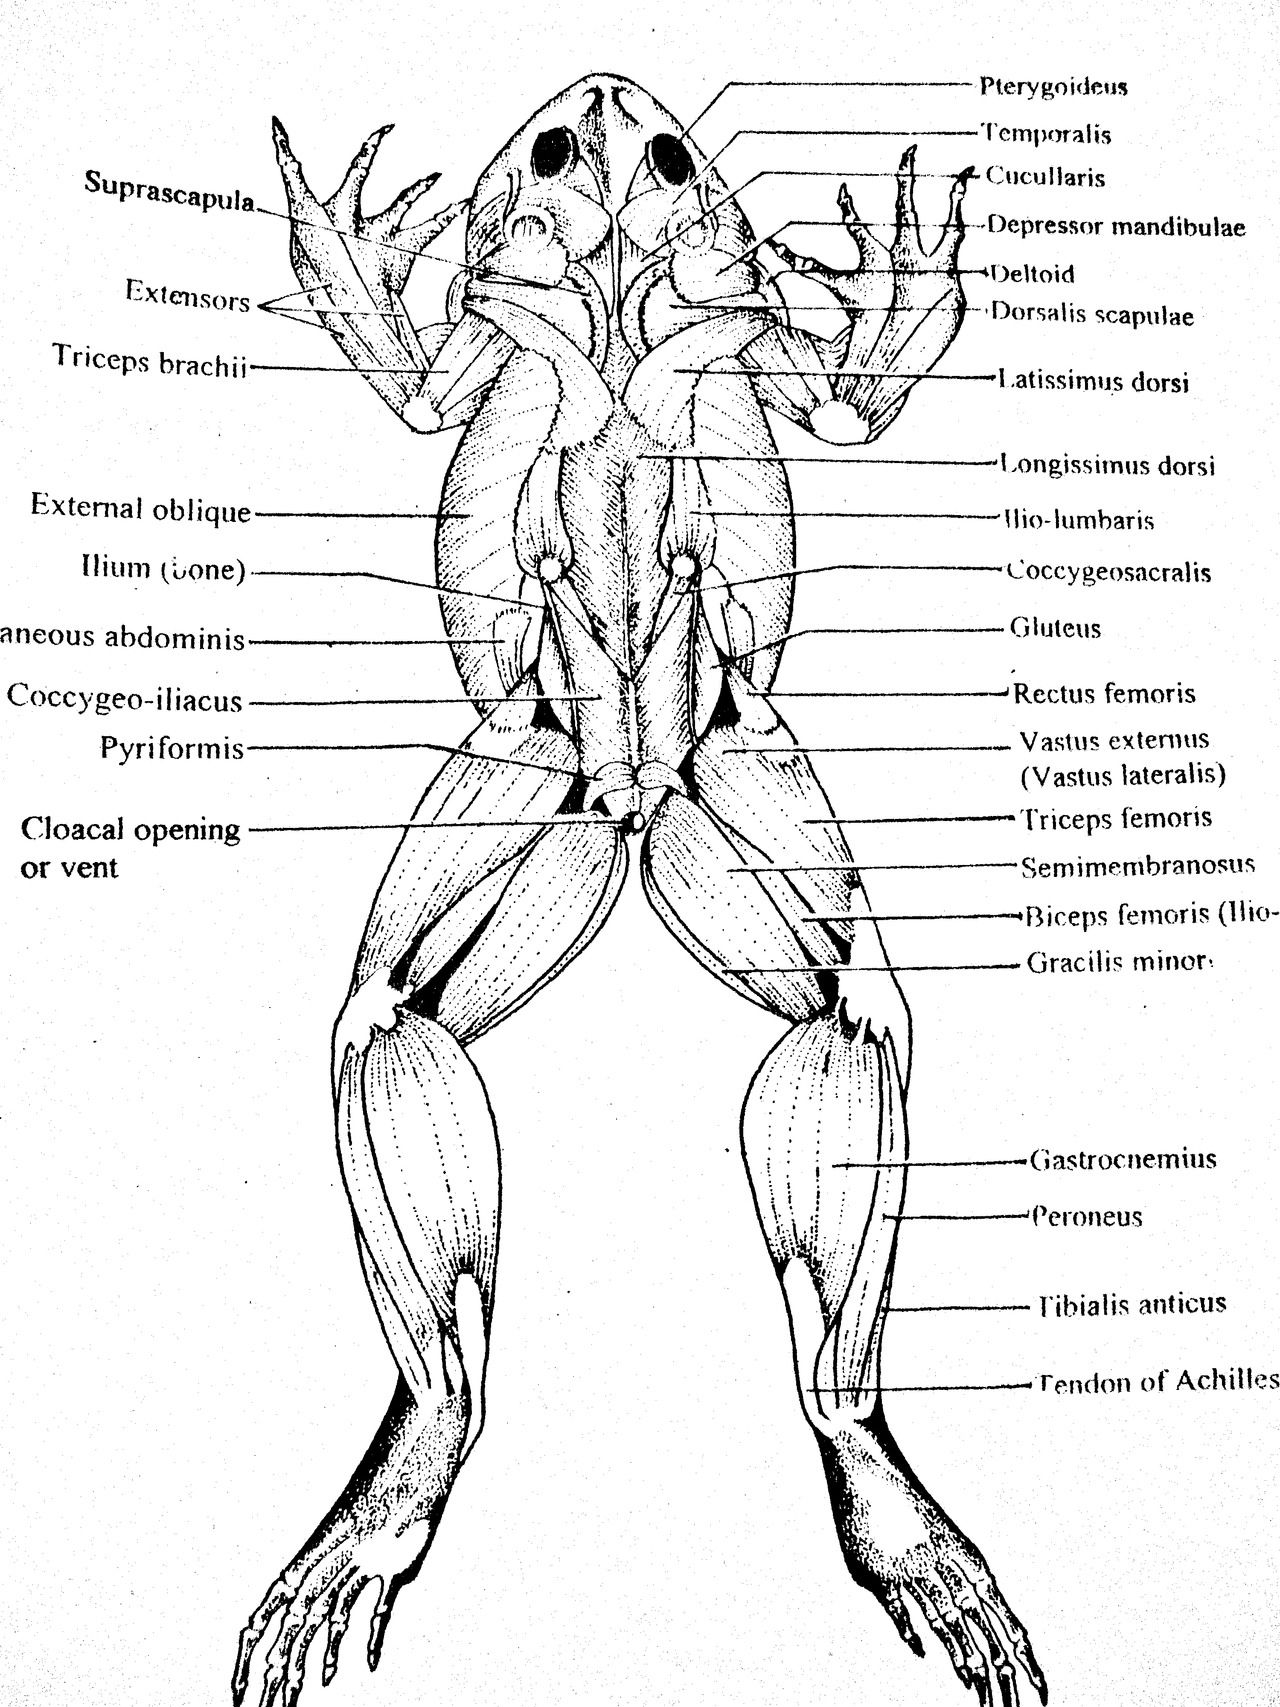 Frog Muscles Labeled Dorsal Muscles Parts Of A Frog Image Frog Rh Anatomyhumancharts Com Frog Dorsal Side Of Muscly Frog Frog Dissection Frog Or Toad Frog